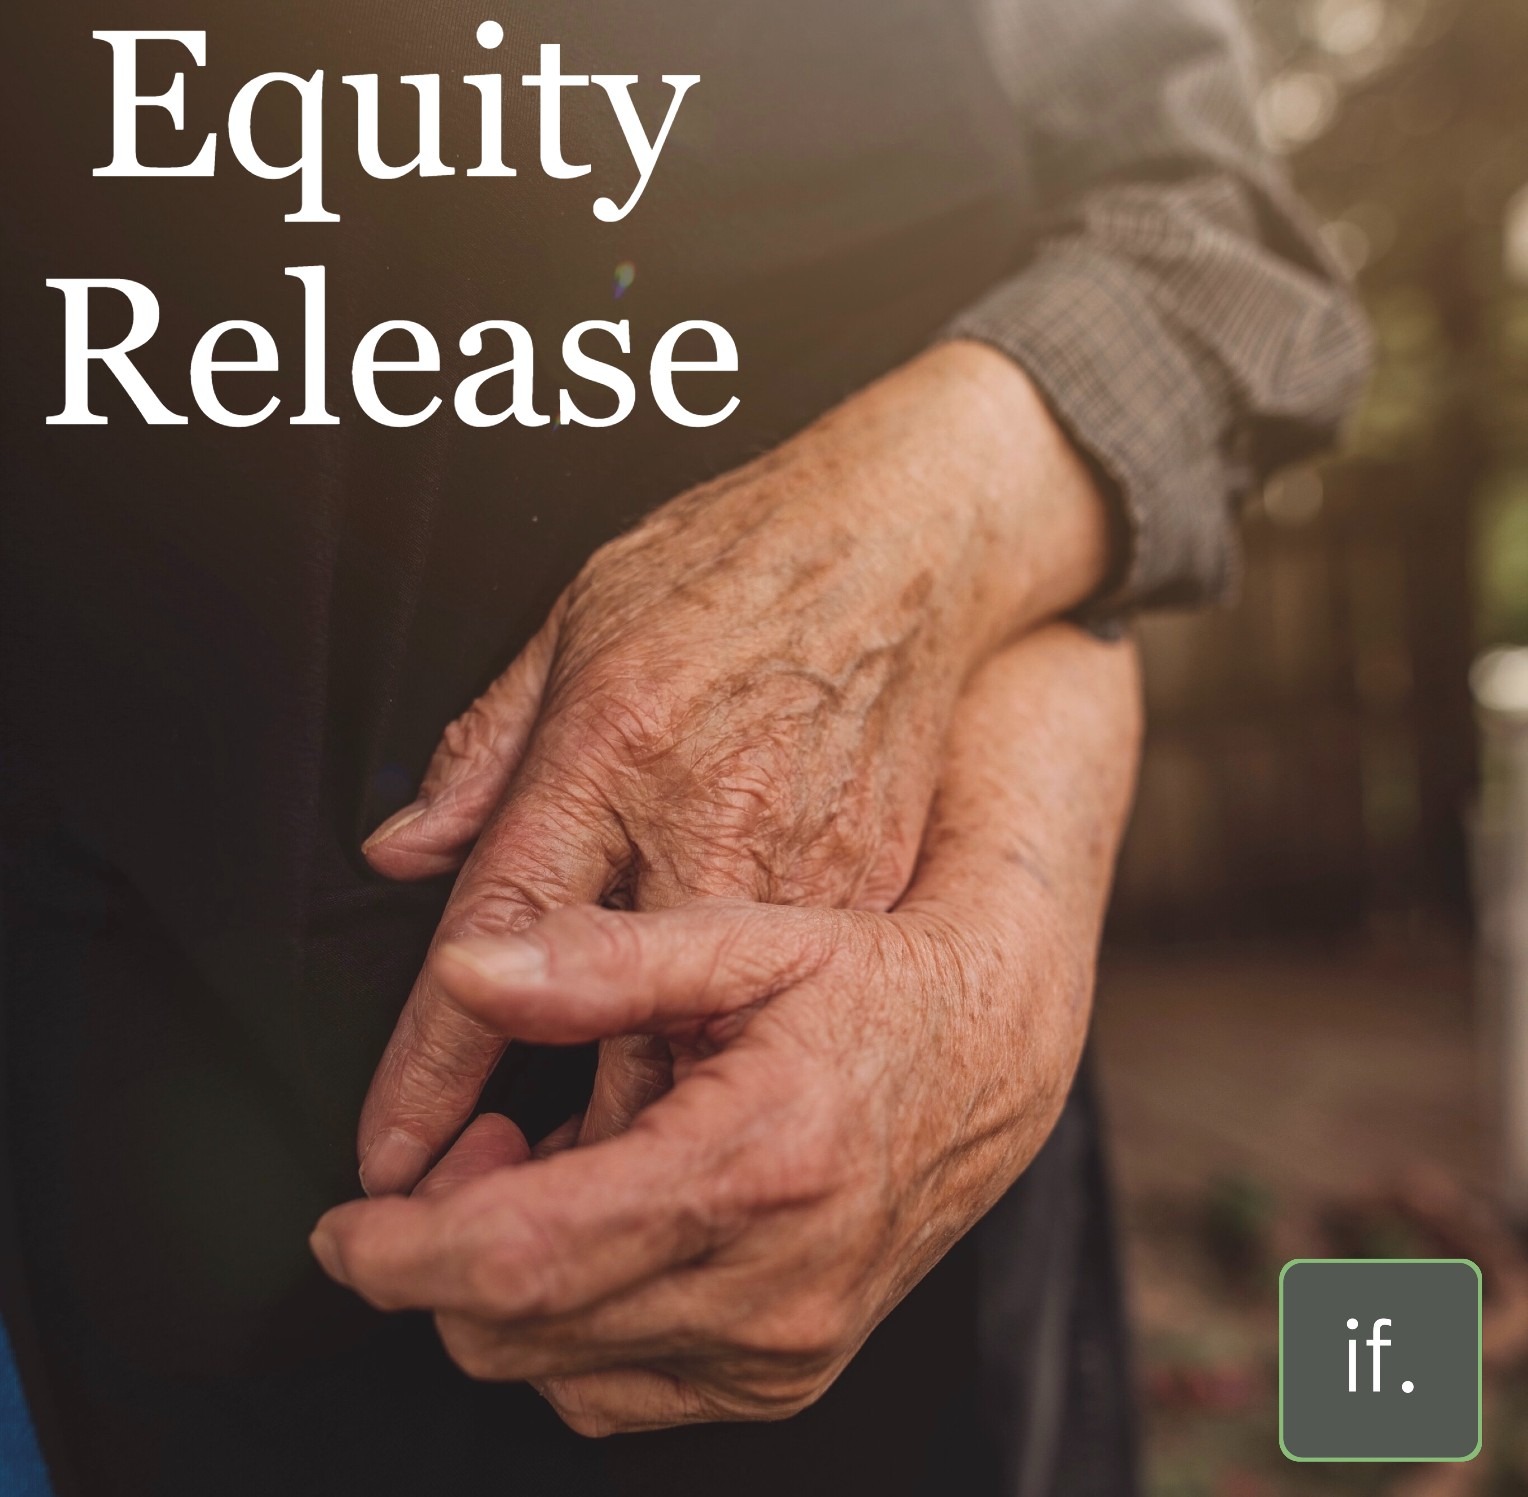 What is Equity Release?